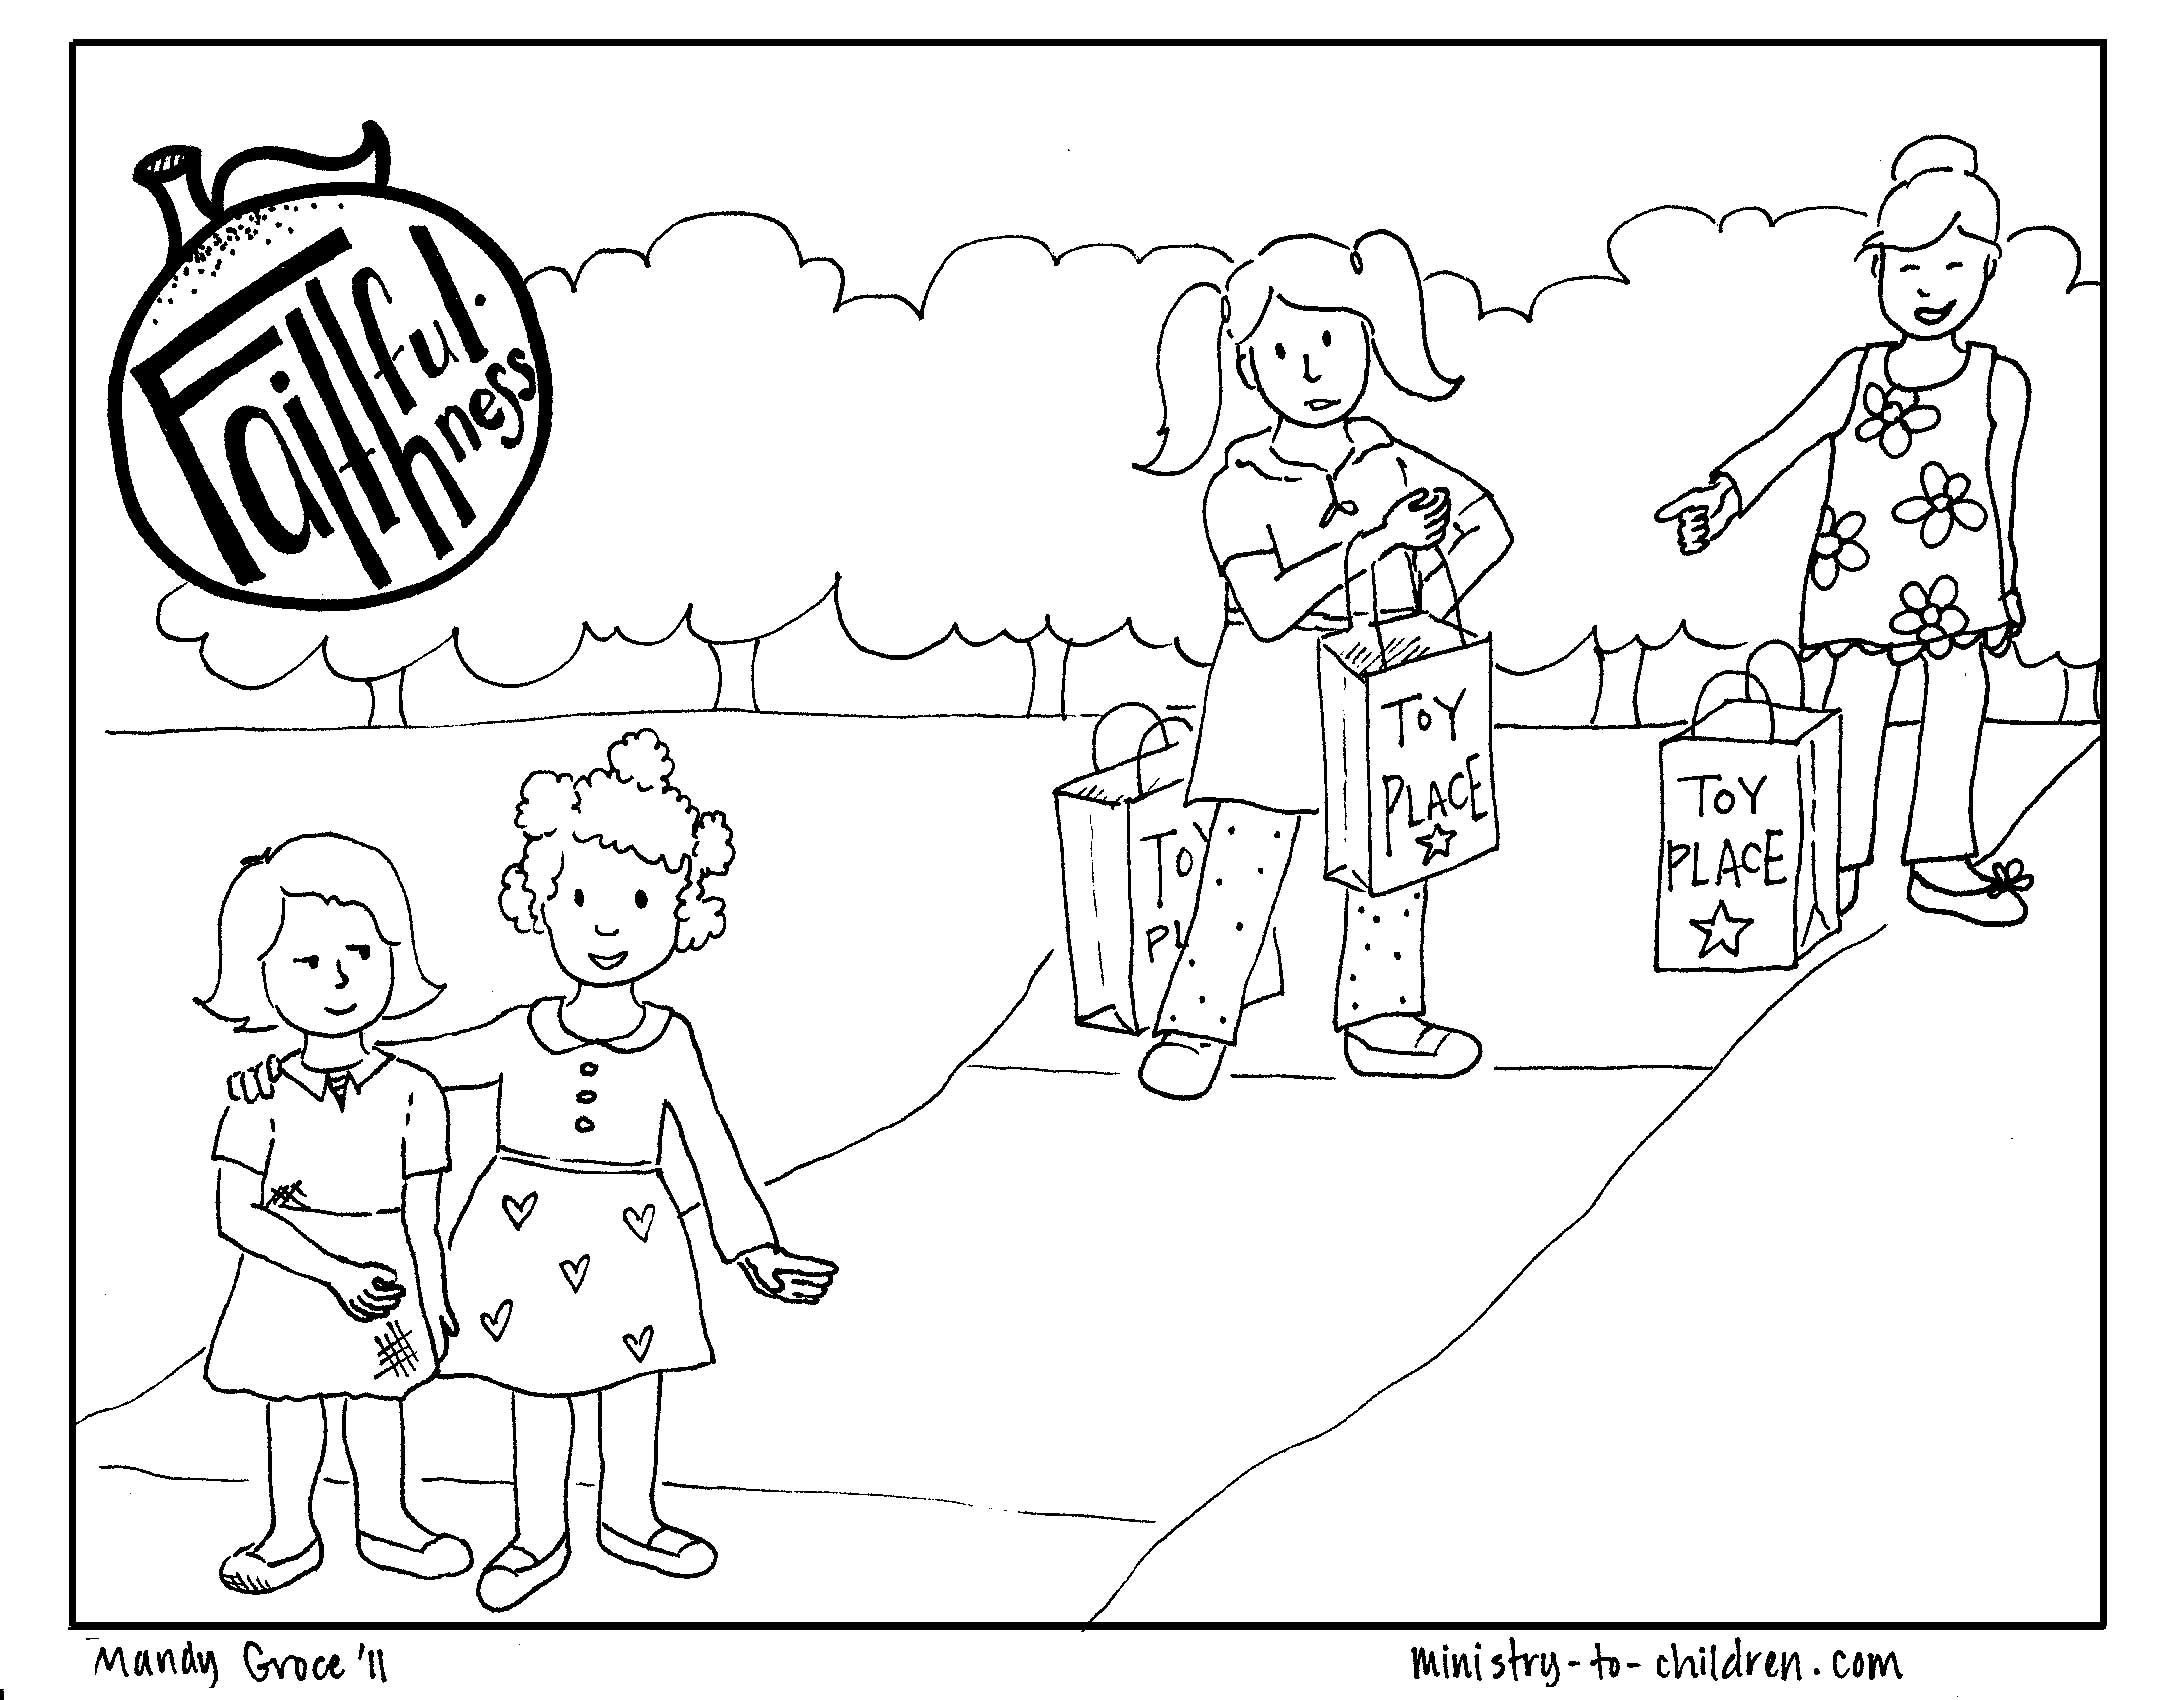 Sunday School Coloring Pages Fruit Of The Spirit